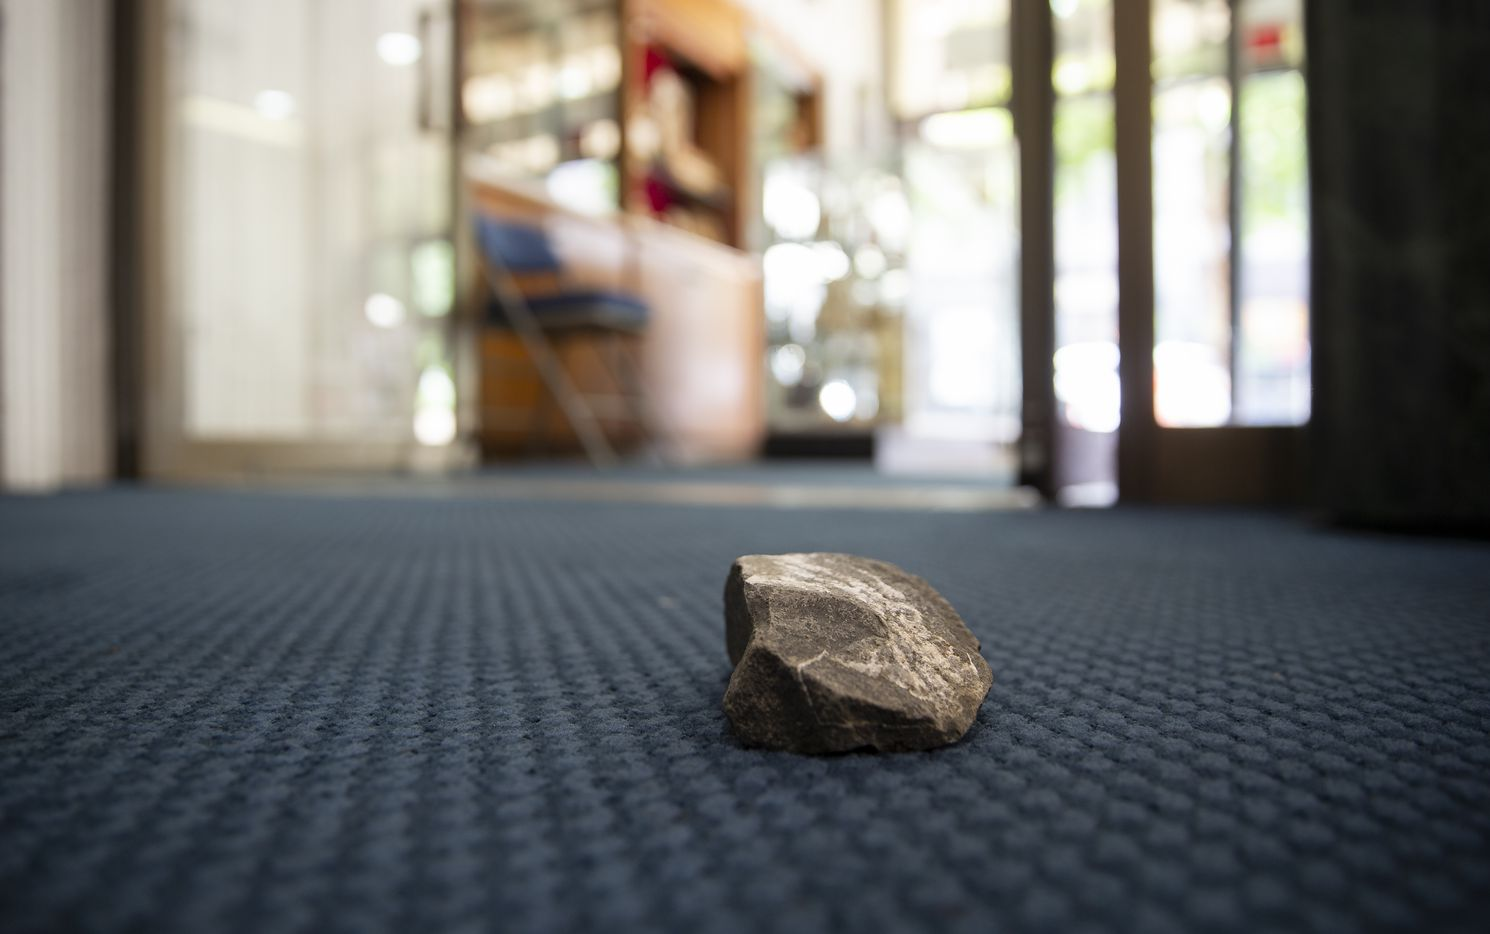 A rock that was thrown through a window at St. Jude Chapel remains Saturday morning, May 30, 2020, in Downtown Dallas. The chapel on Main St. was hit during last night's protest.